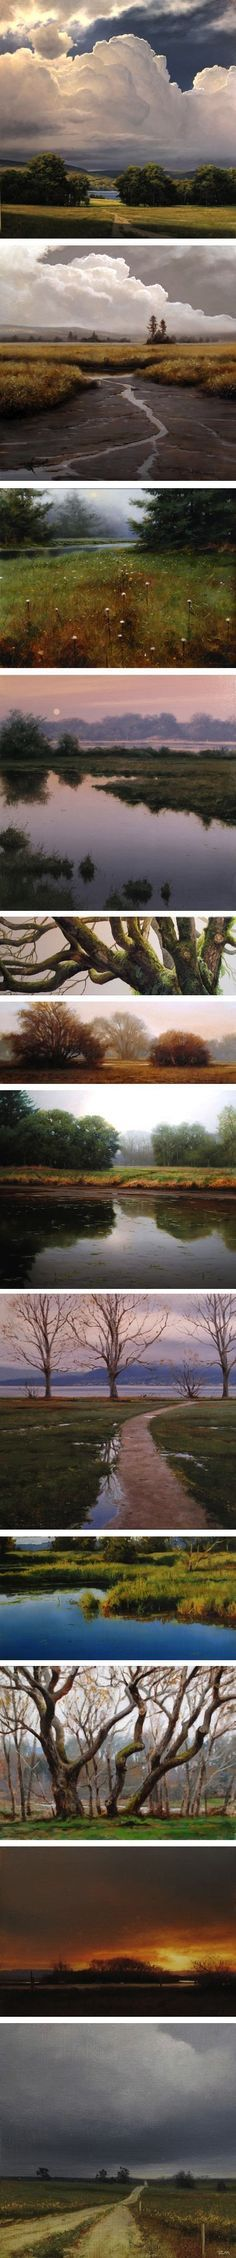 Canadian artist Renato Muccillo's stunning paintings...the dandelion scene and mossy branches are my favorites. {via lines and colors}: